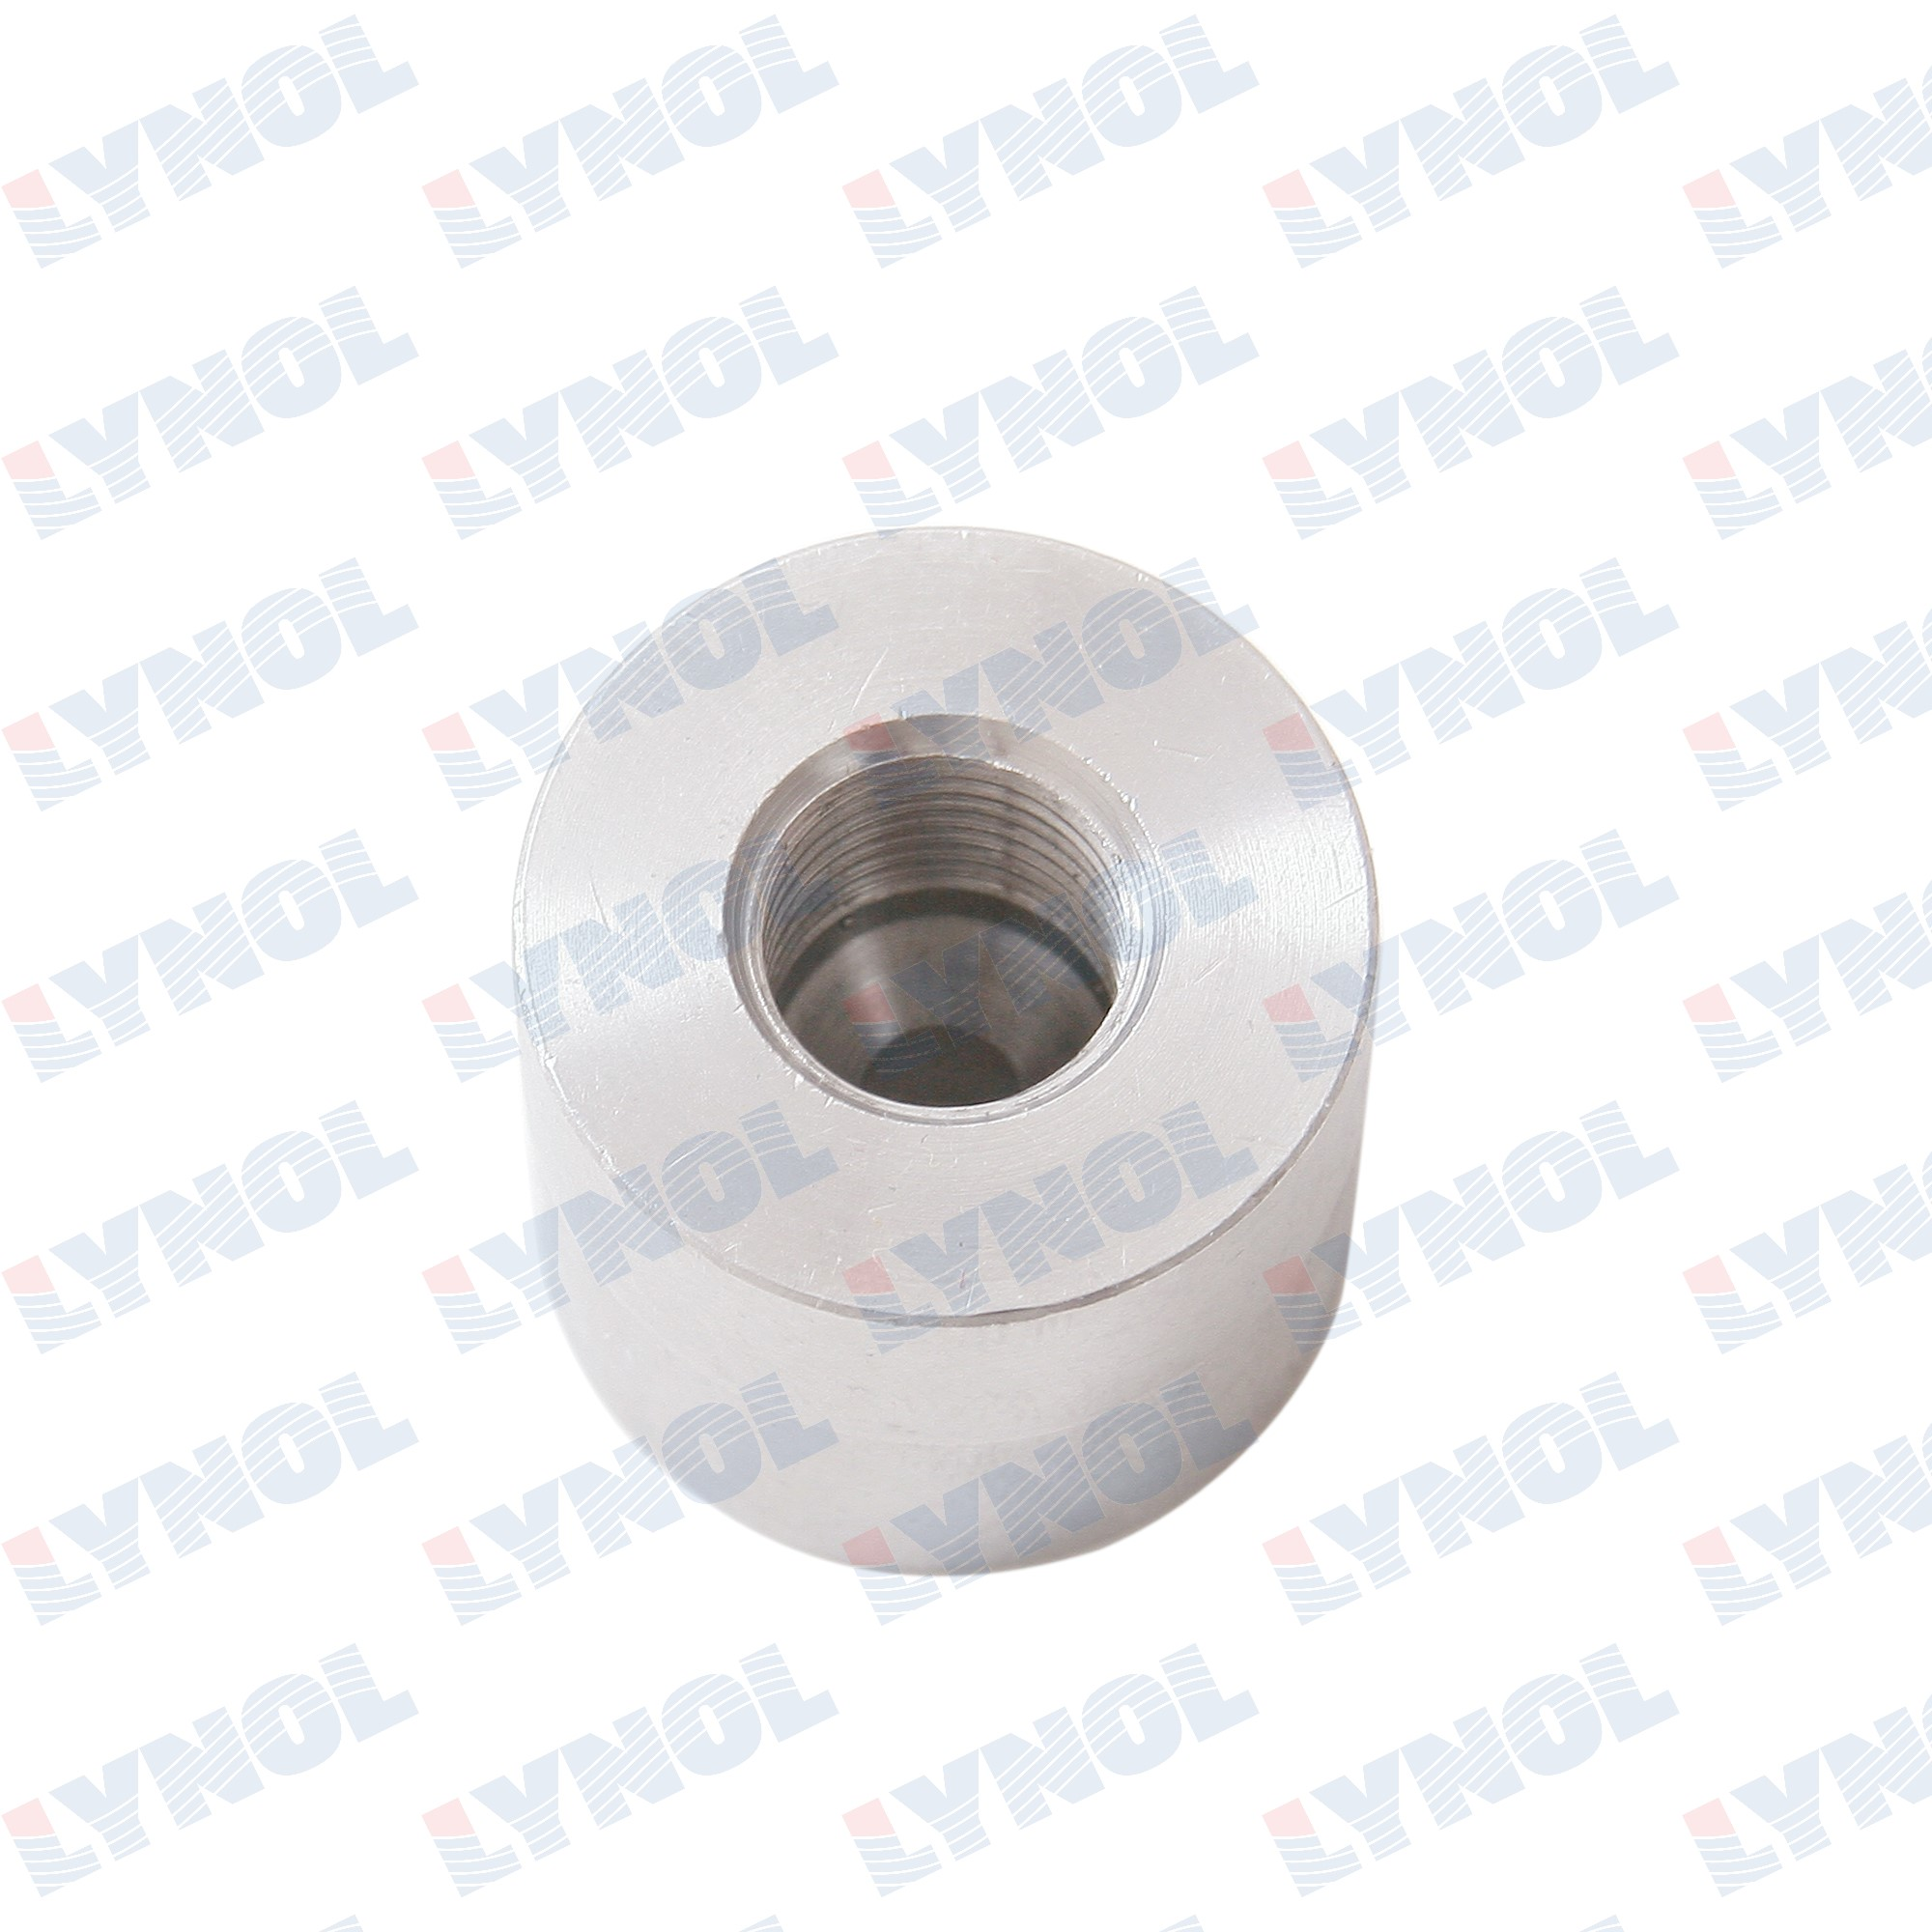 4504010 - SENSOR BUNG - M12*1.25 - Normal Flare Overall Length 7/8'', Outside Diameter 1''